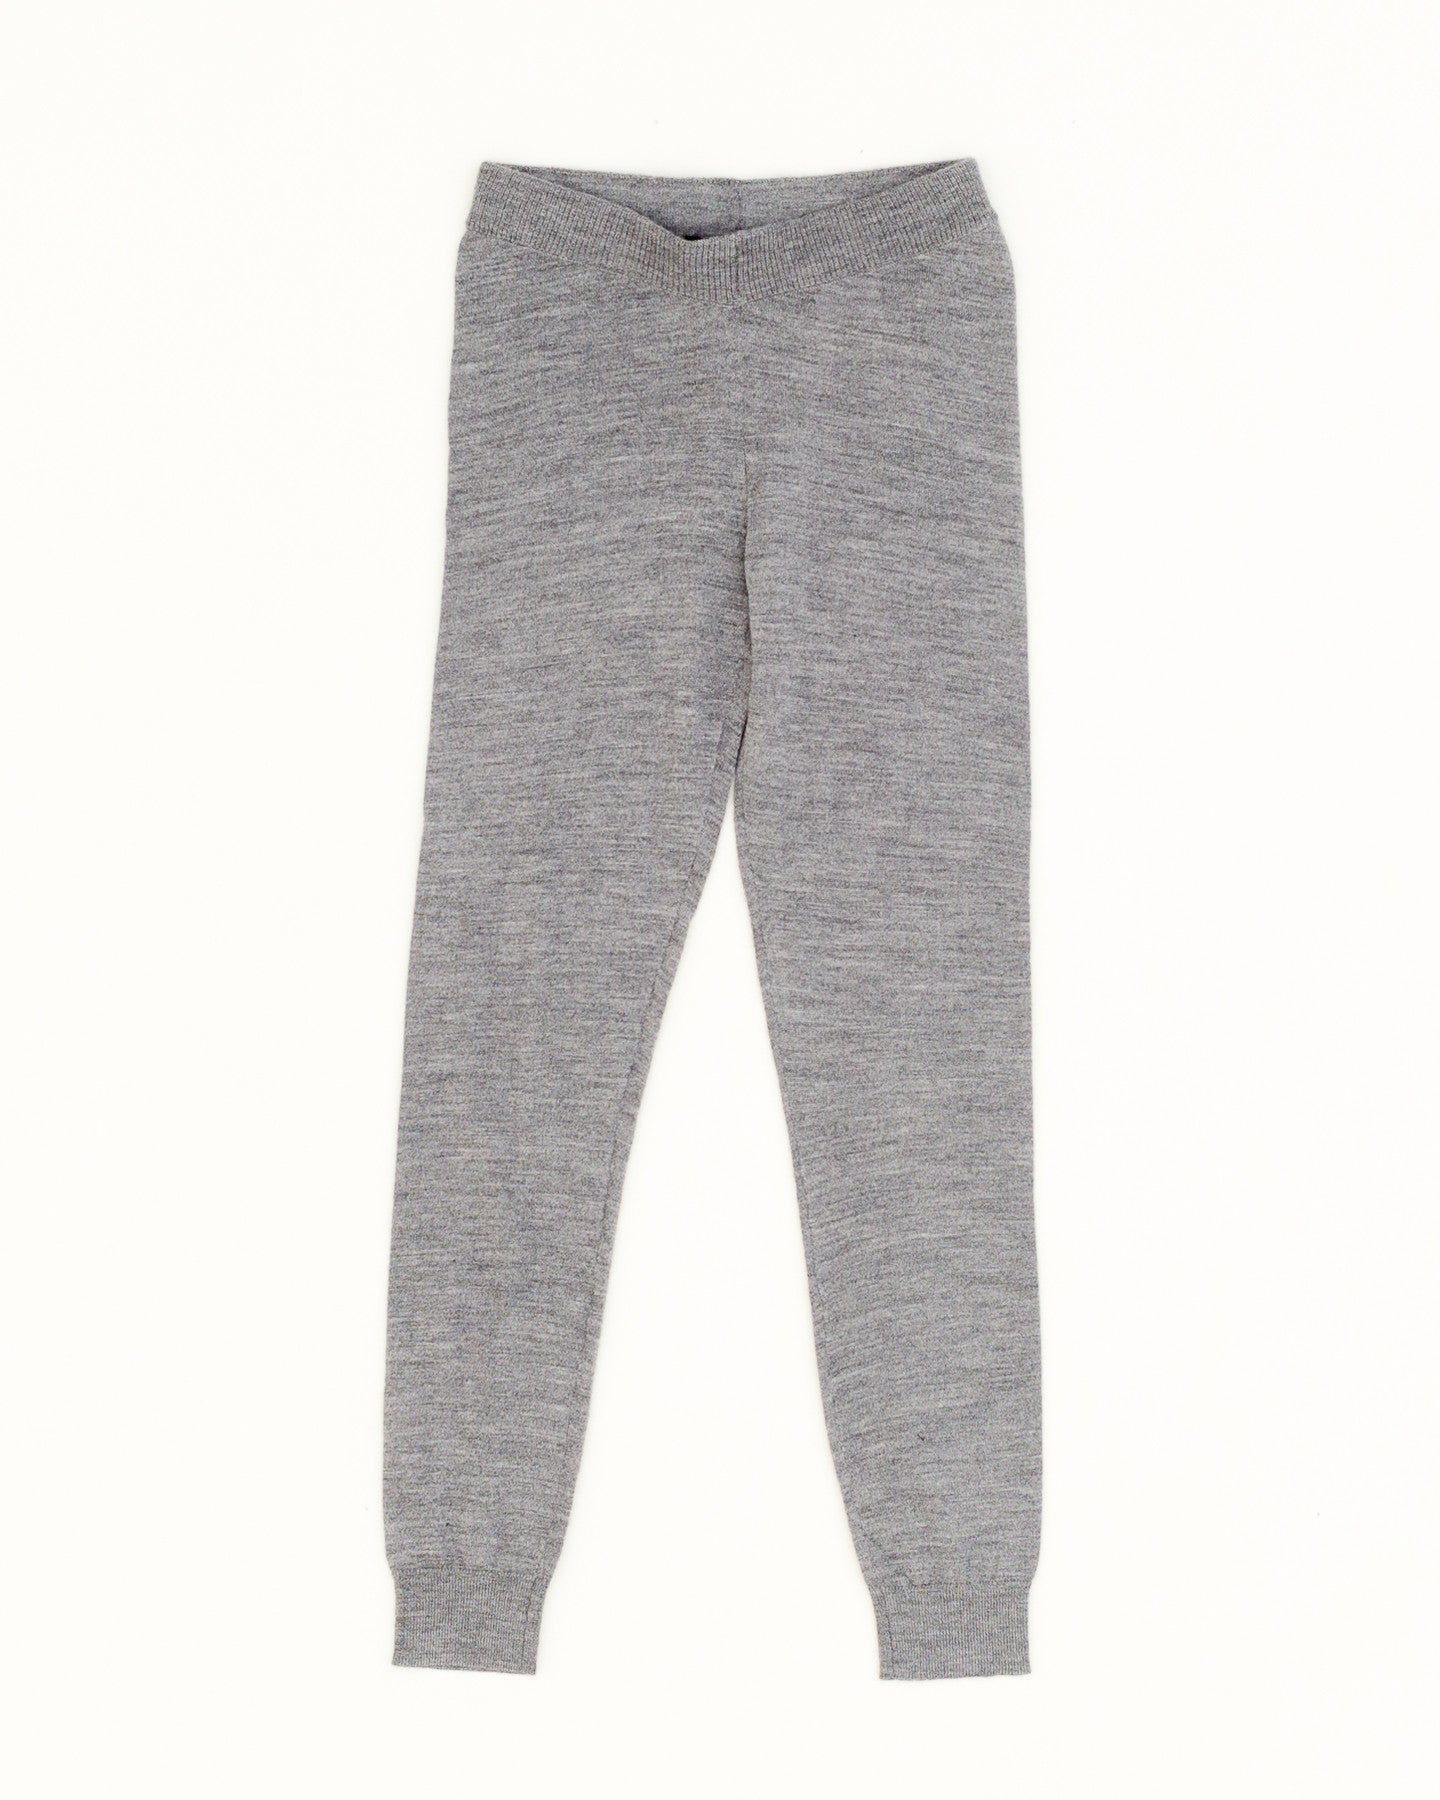 Aza leggings - grey melange